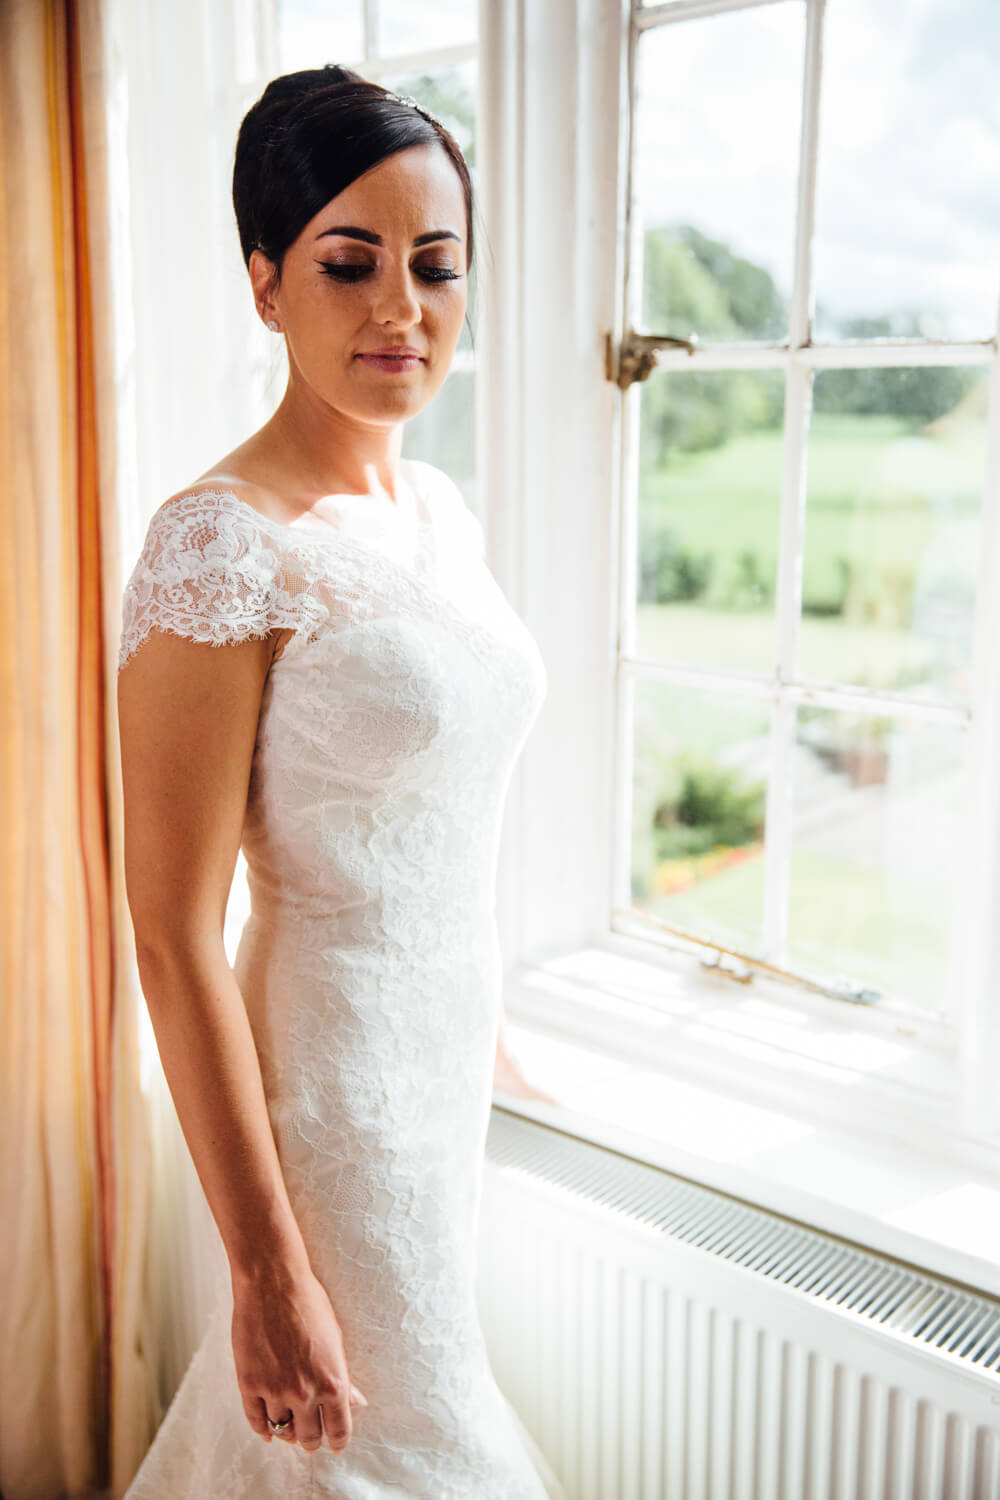 portrait photograph of bride at window